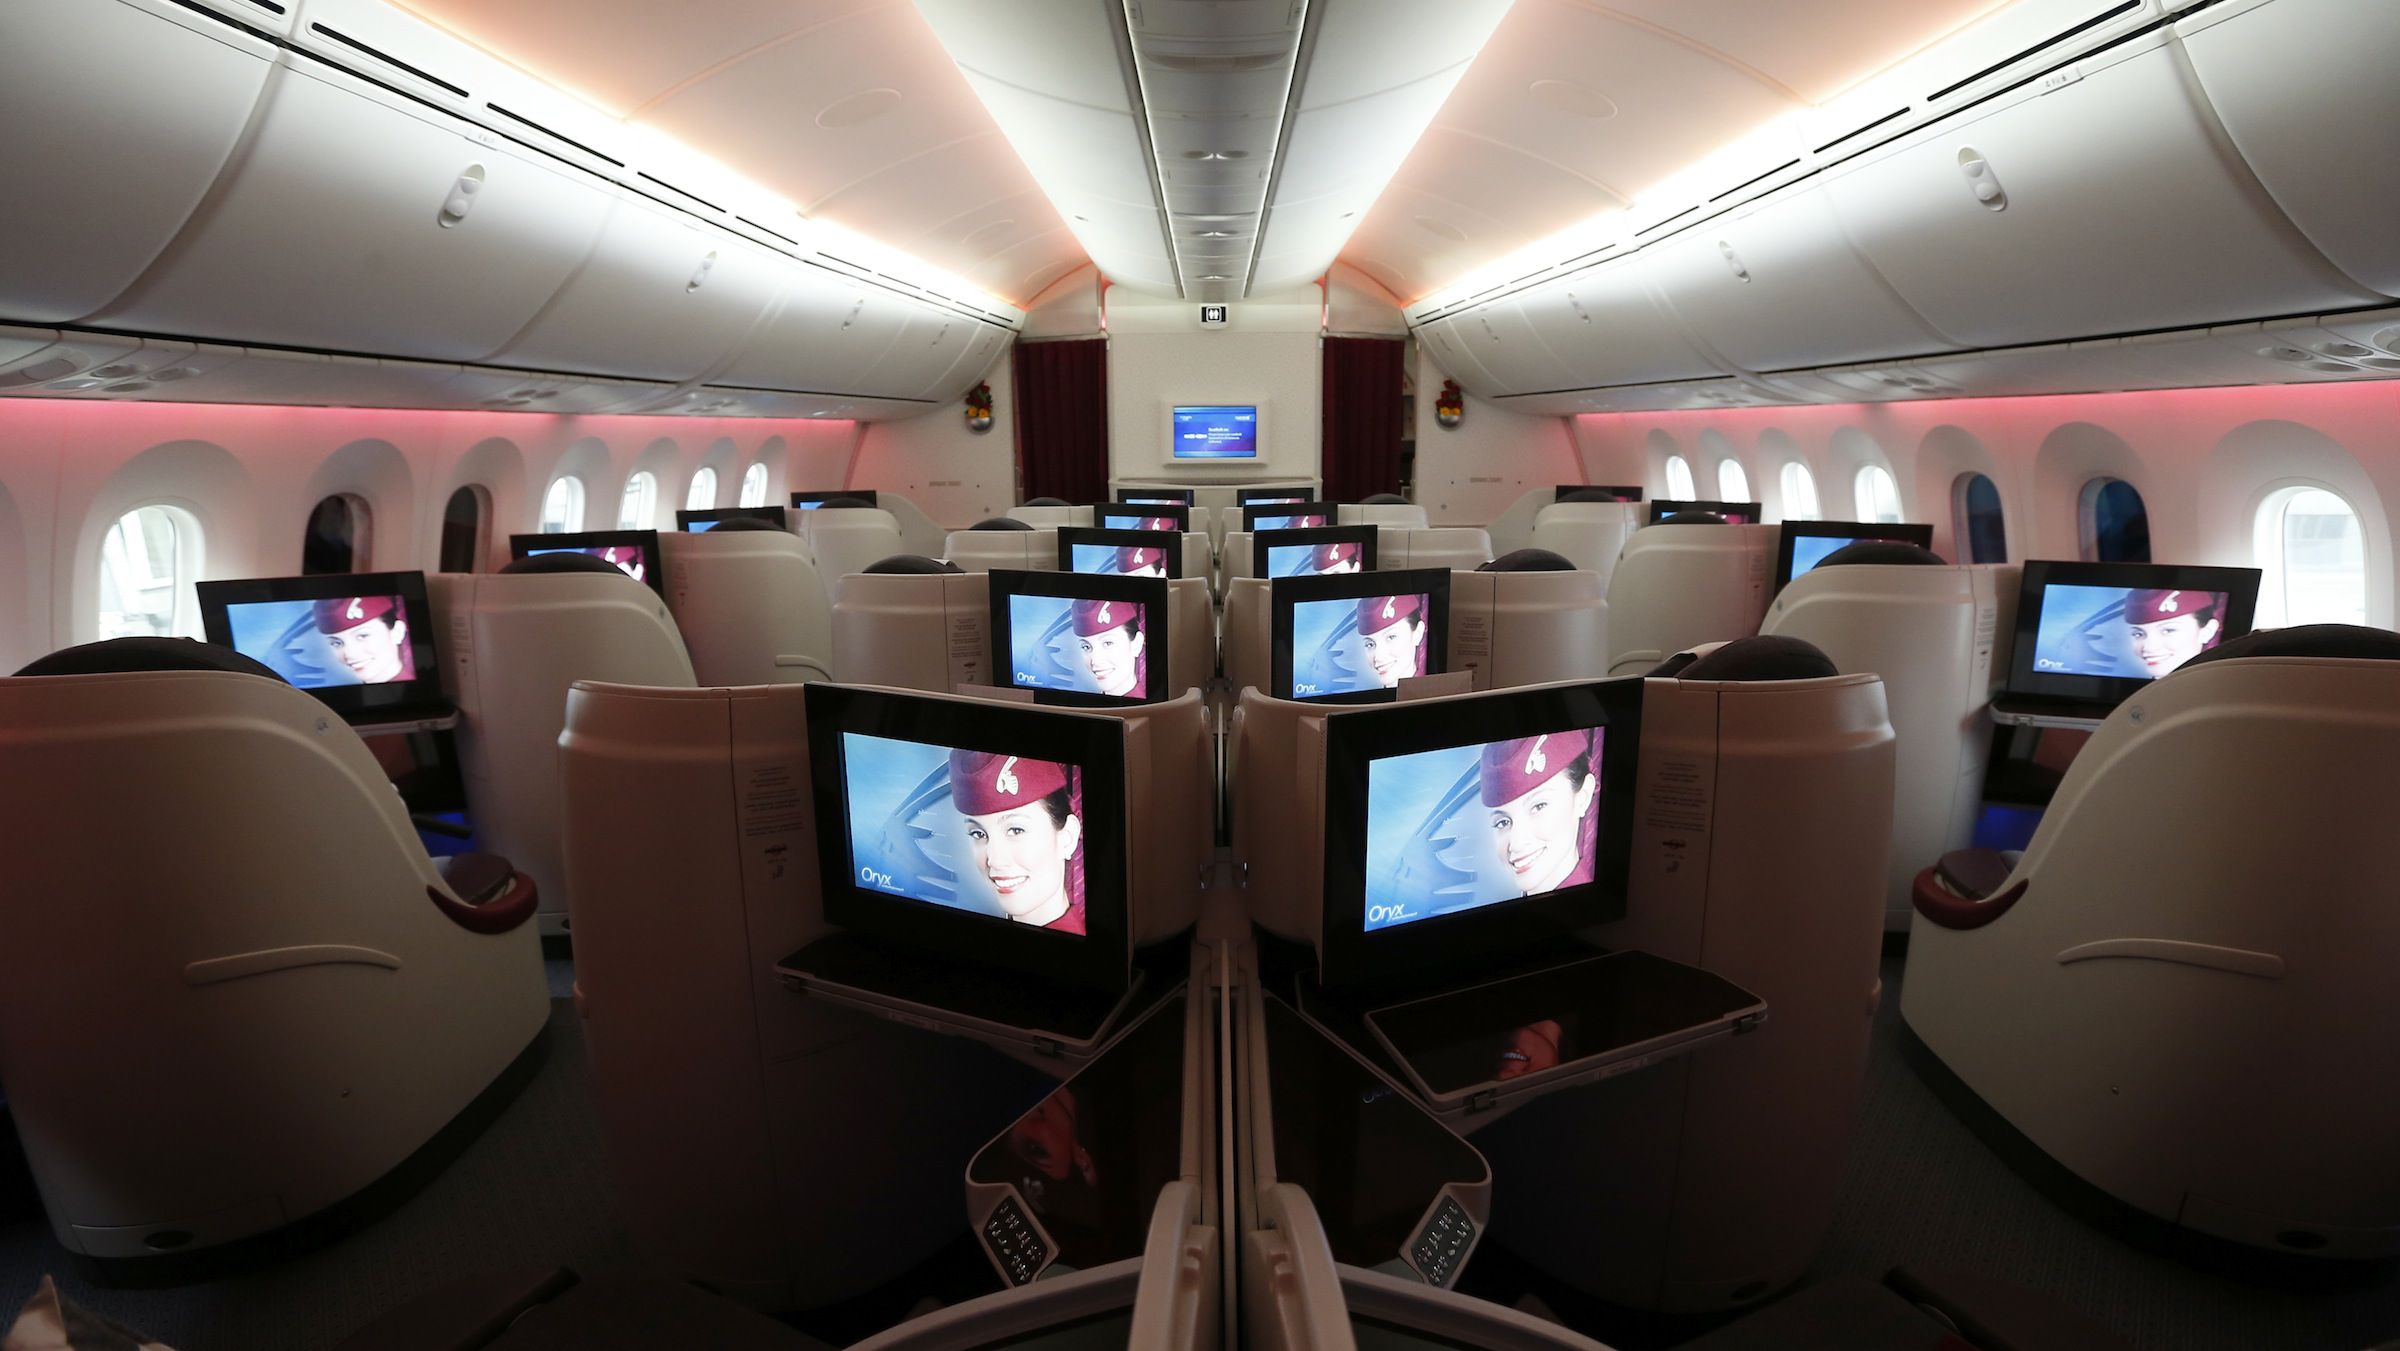 Seats and screens in the business class cabin of Qatar Airways' new Boeing 787 Dreamliner are seen after it arrived on it's inaugural flight to Heathrow Airport, west London December 13, 2012. Qatar Airways is the first airline to operate scheduled Dreamliner flights to and from the UK.    REUTERS/Andrew Winning (BRITAIN - Tags: TRANSPORT BUSINESS SOCIETY TRAVEL) - RTR3BJ6E